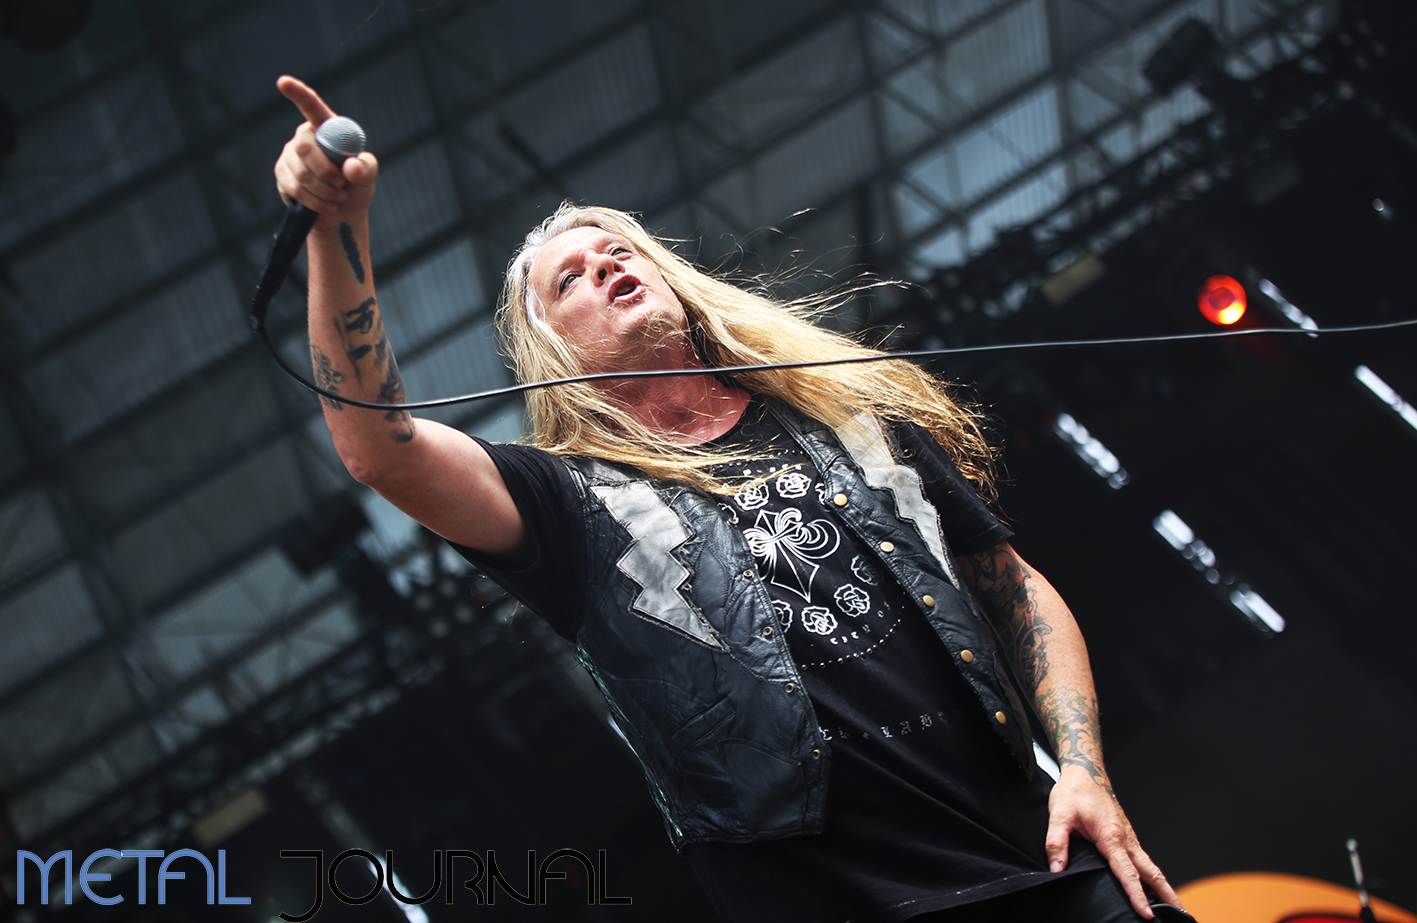 sebastian bach - metal journal rock fest barcelona 2019 pic 5